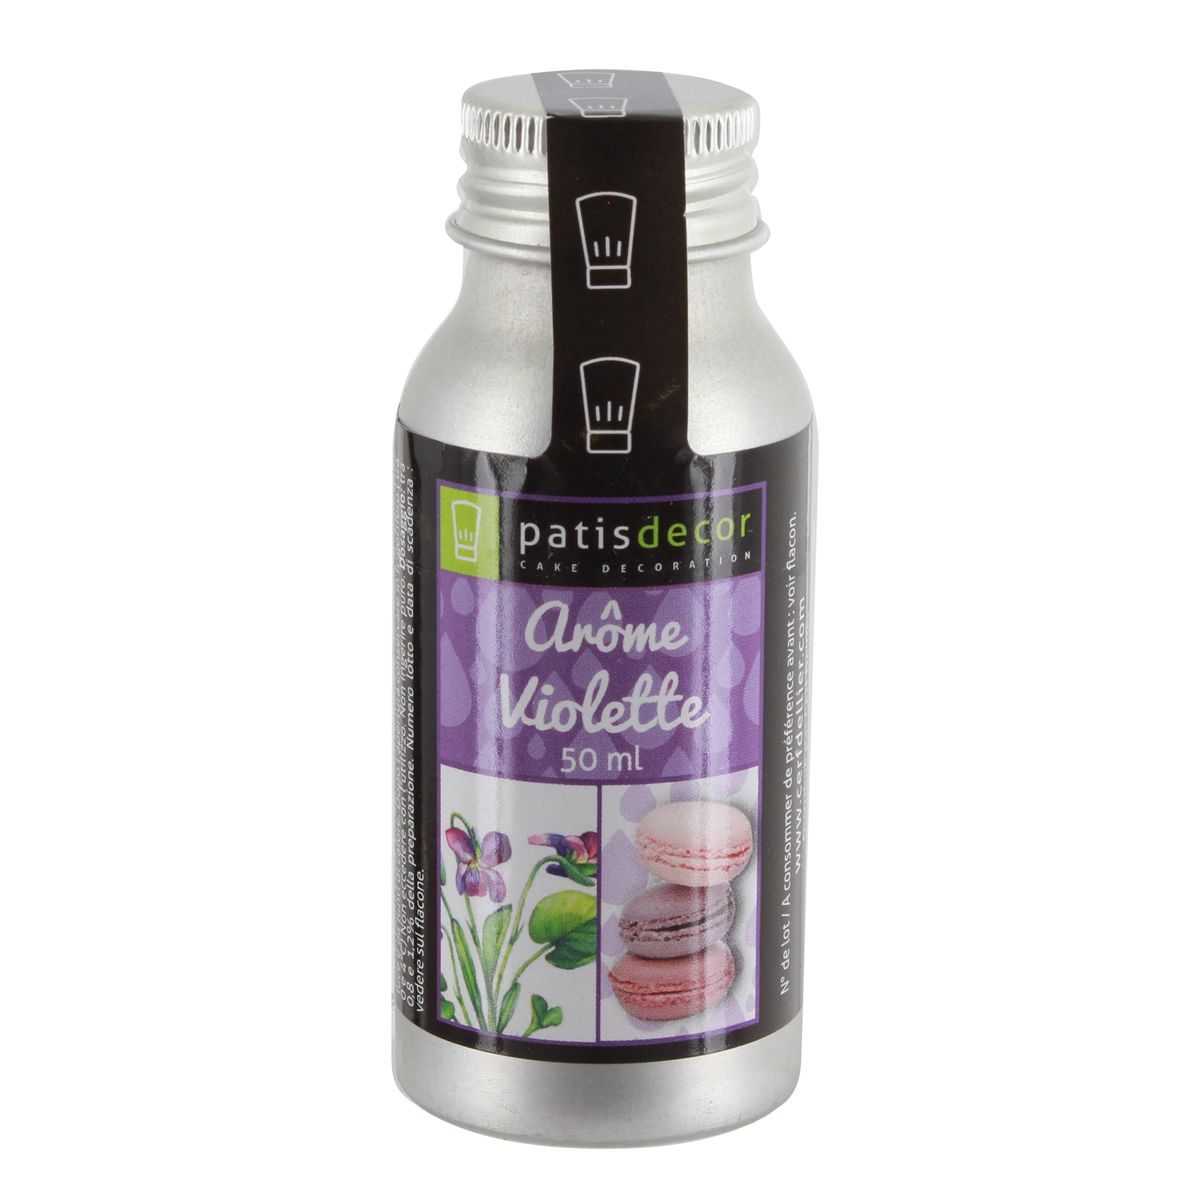 Arôme alimentaire naturel violette 50 ml - Patisdecor